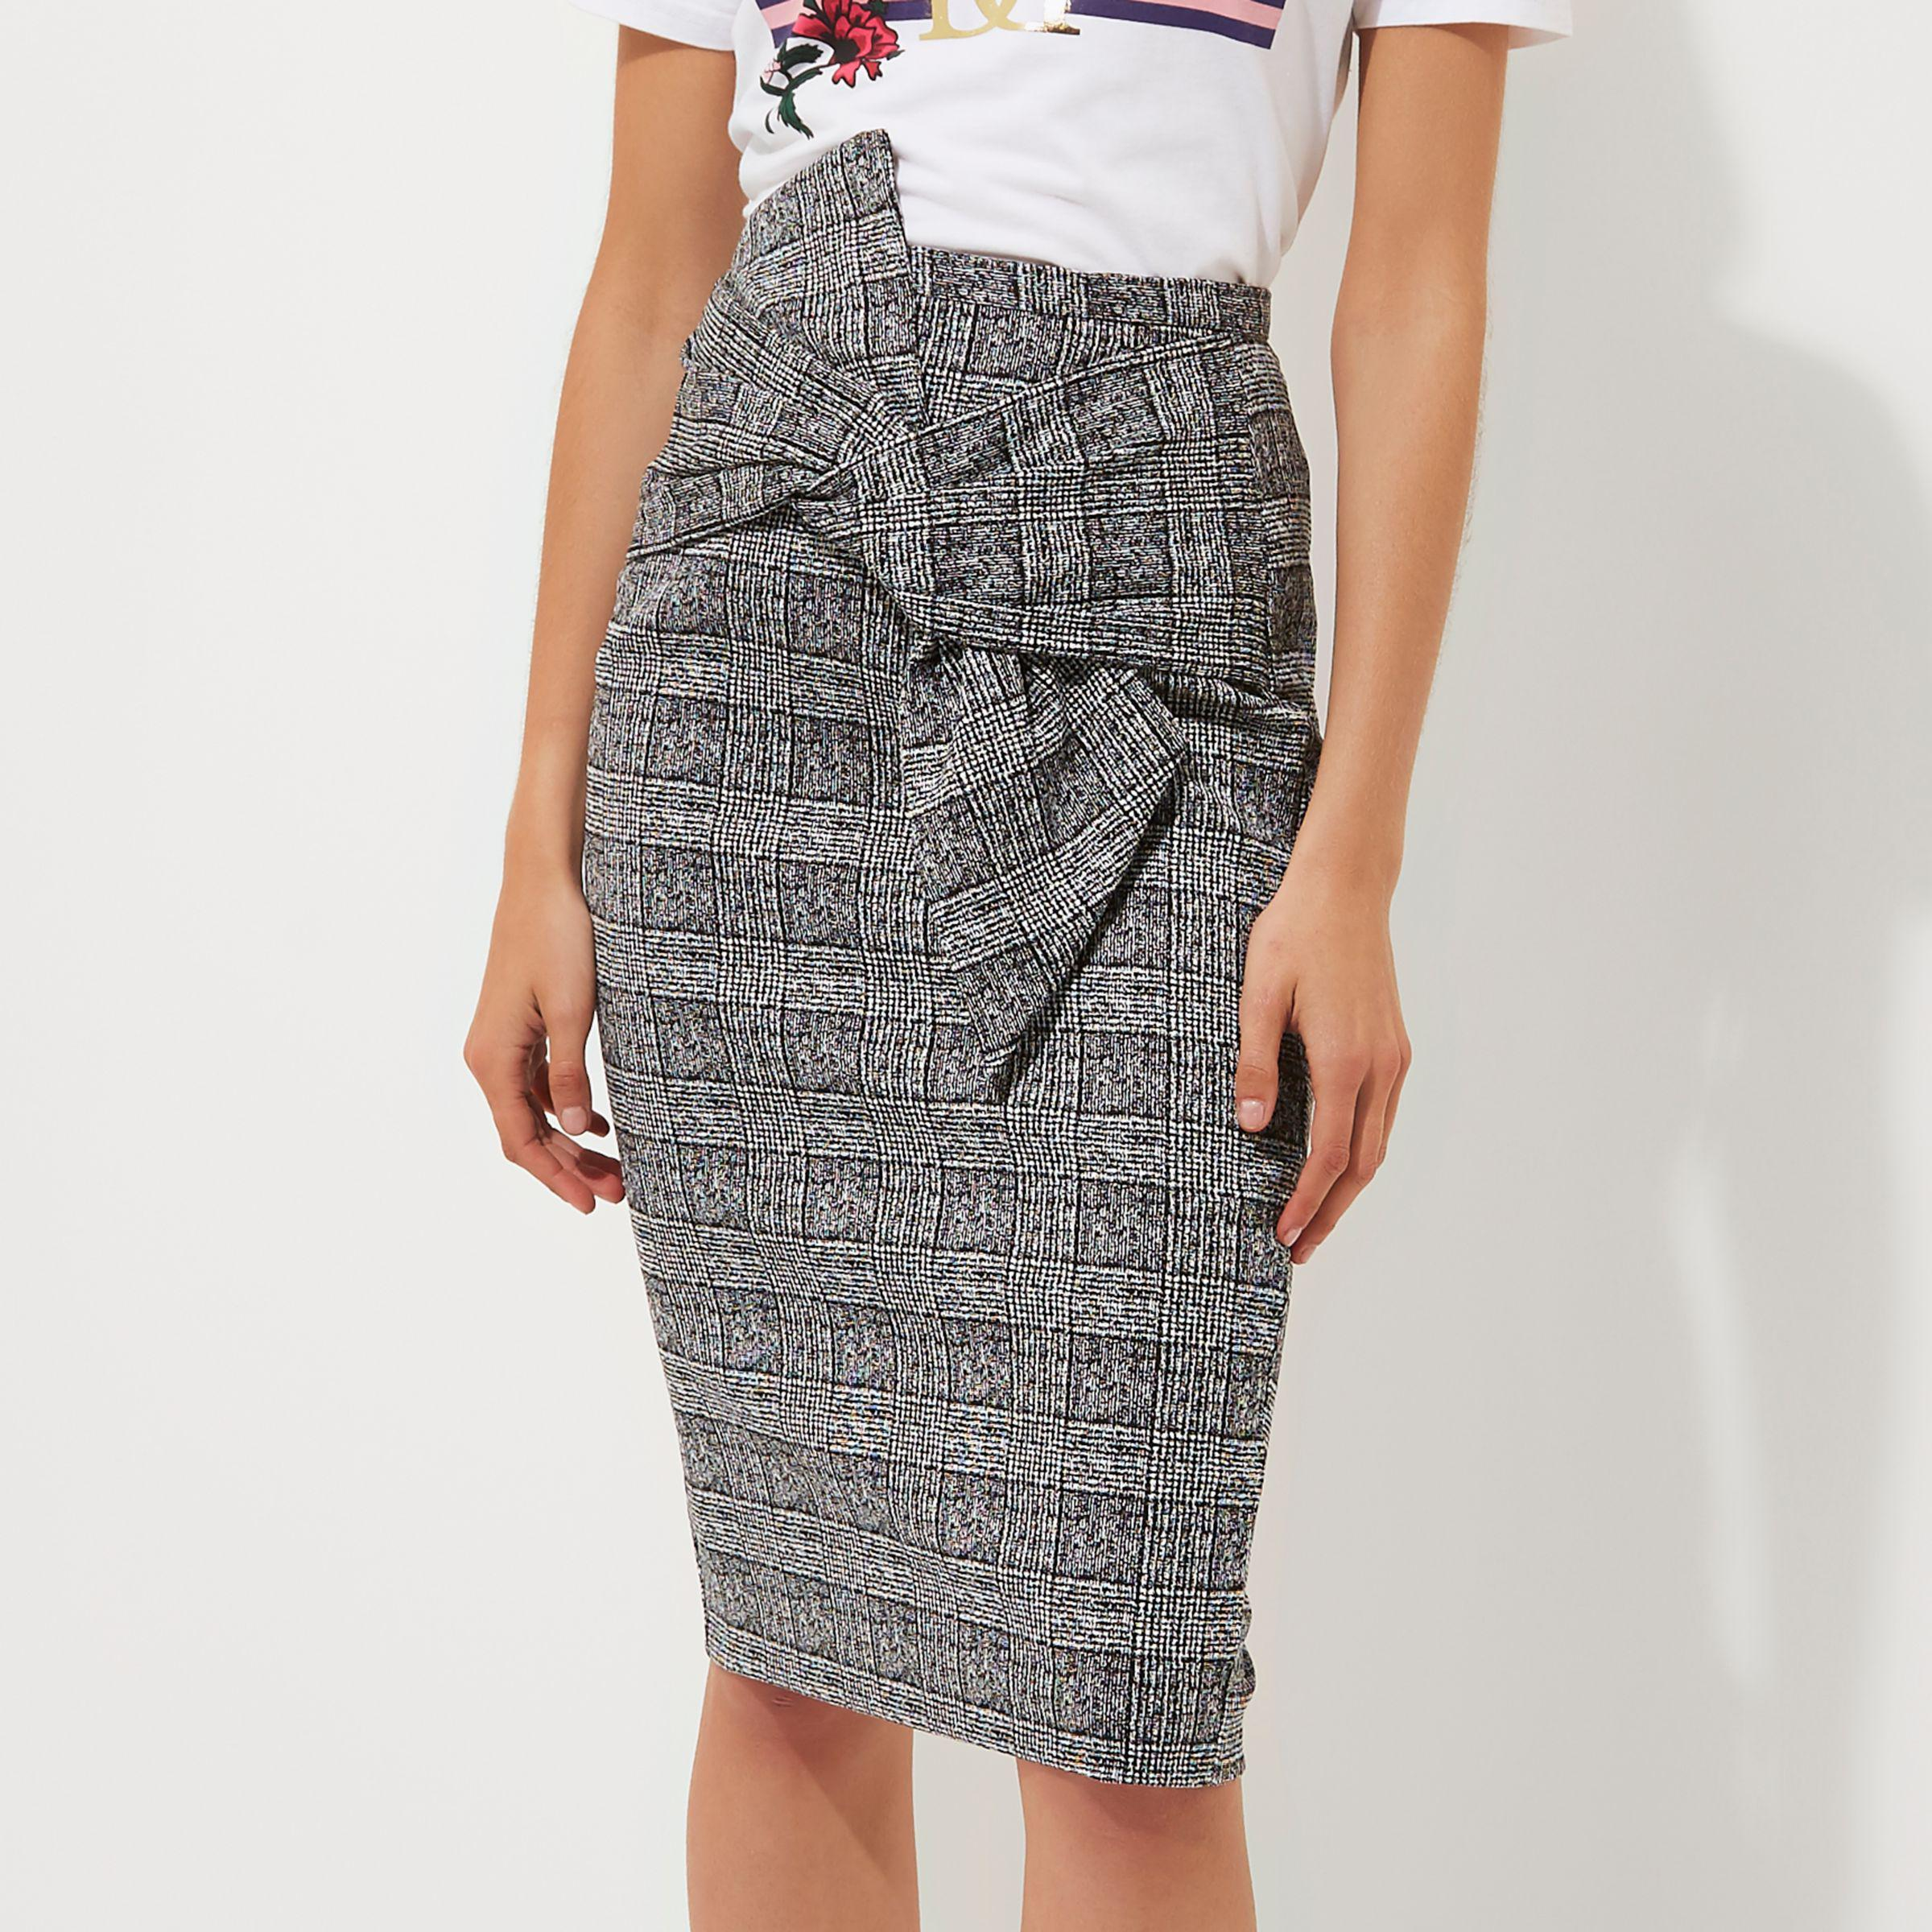 Lyst - River Island Black Check Bow Front Pencil Skirt in Black f0cf4a15e3b